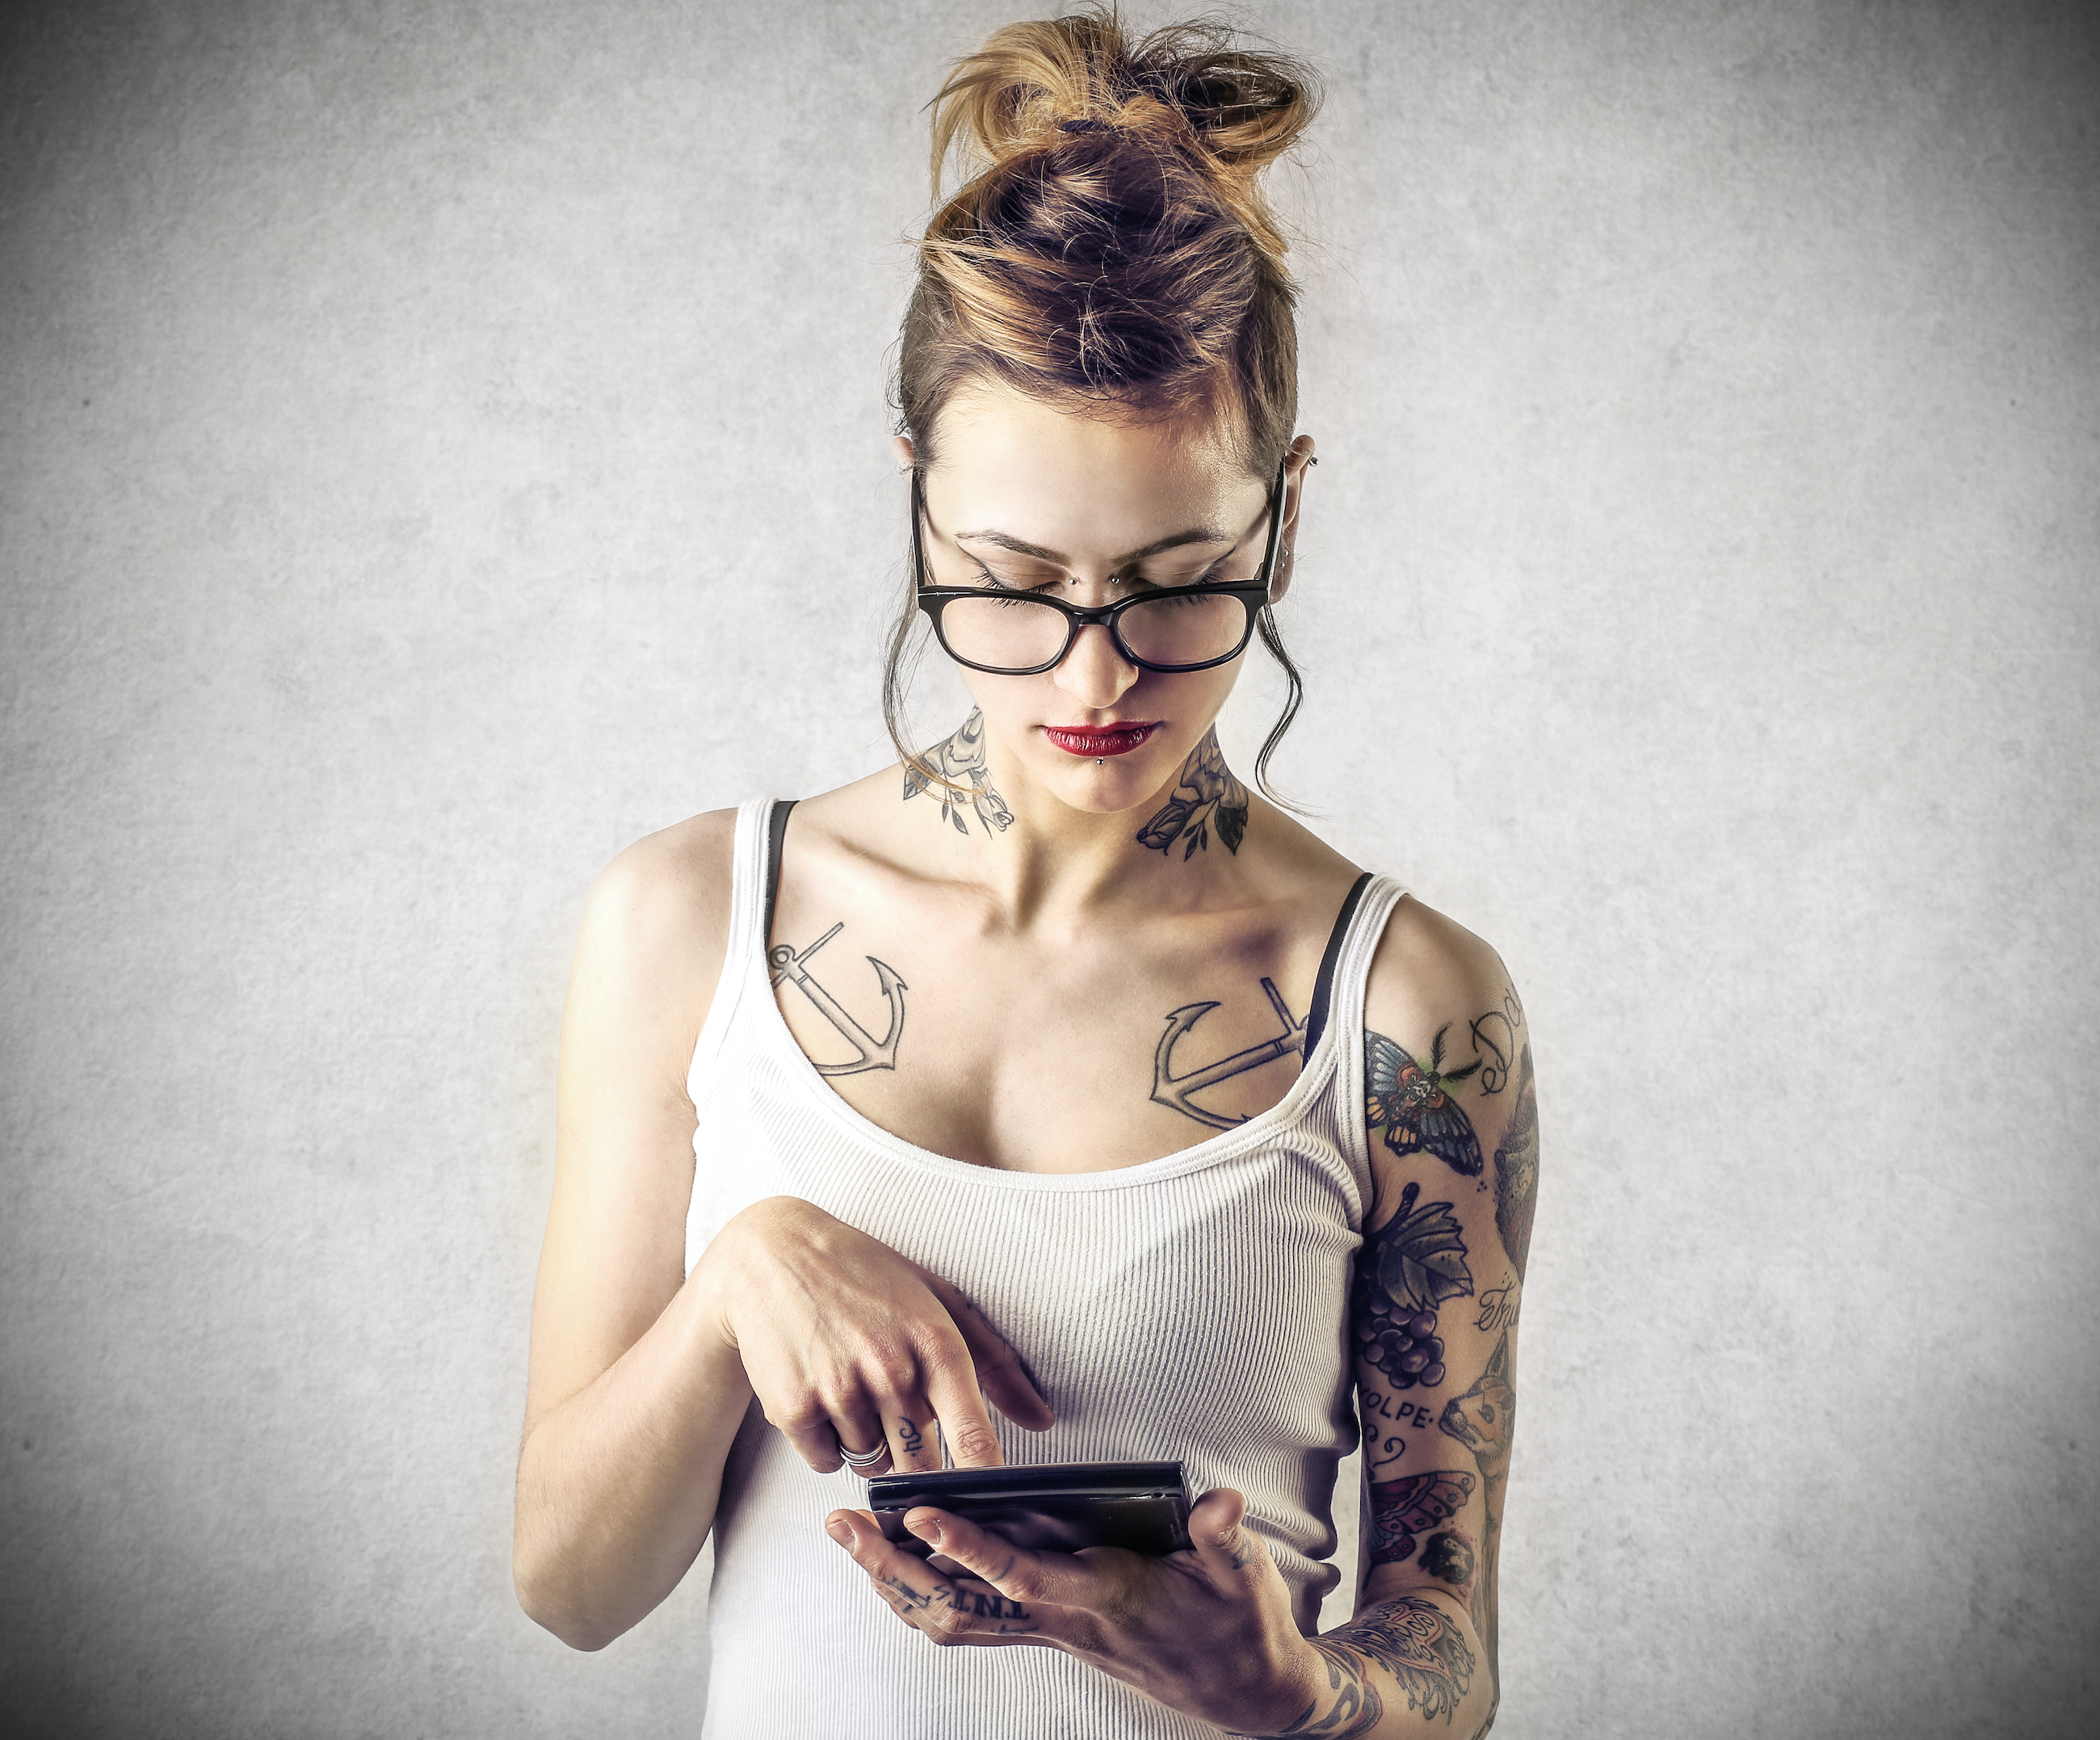 Tattoo prices vary quite a bit, but knowing what to expect in terms of cost before your appointment can help you be properly prepared. You may need to budget or save up for some new ink, so getting an...